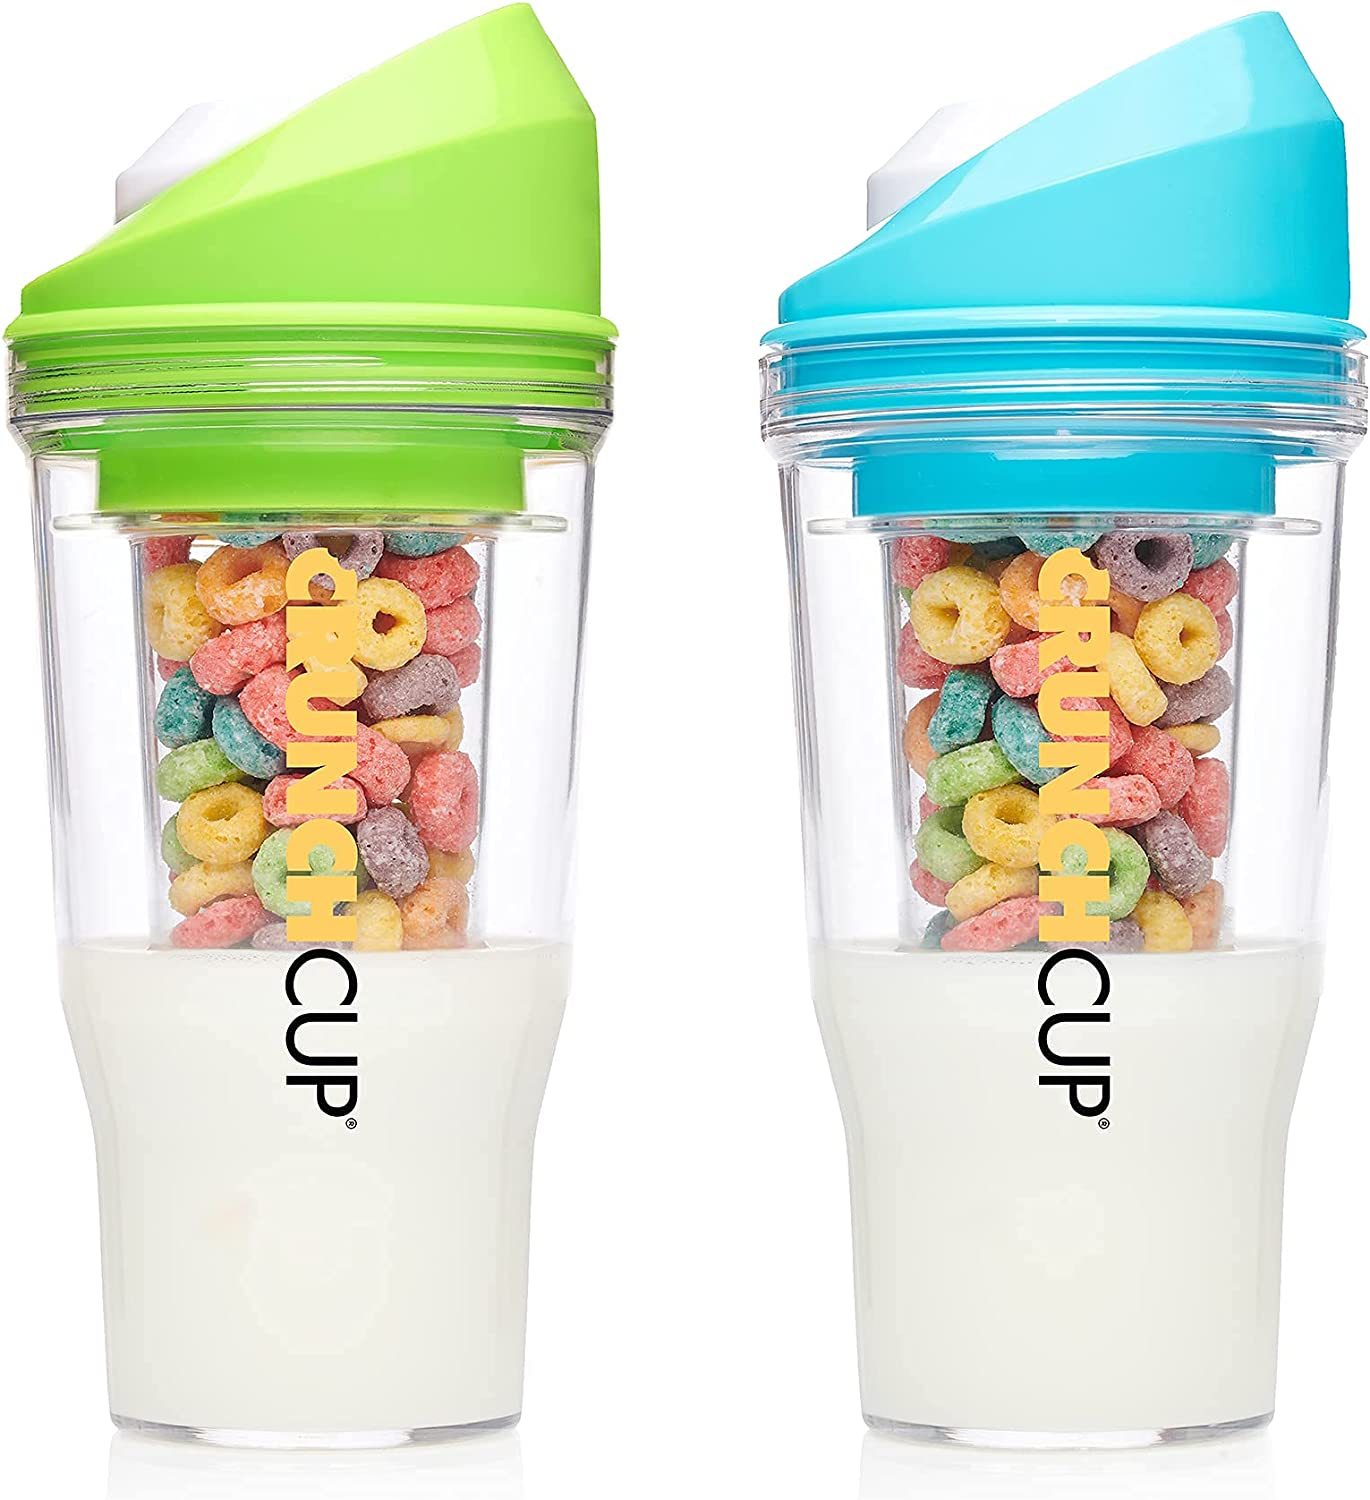 Bundle excellence Save Max 63% OFF 15% on CrunchCups Two Green Blue